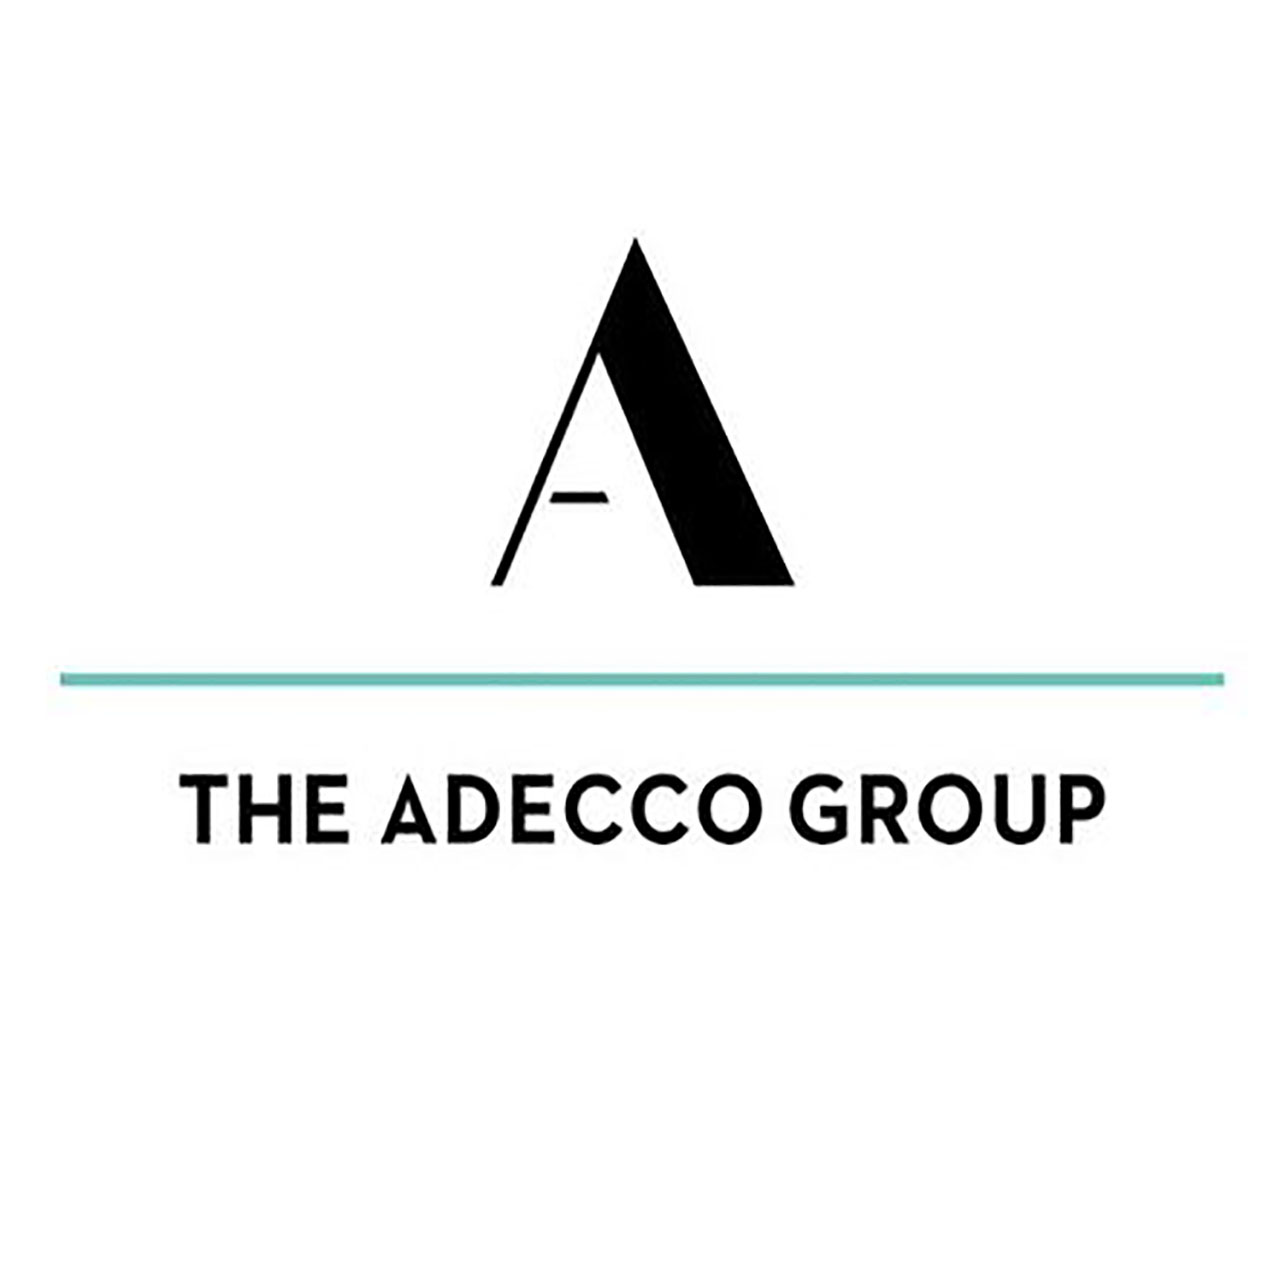 The Adecco Group - Convention mylia_